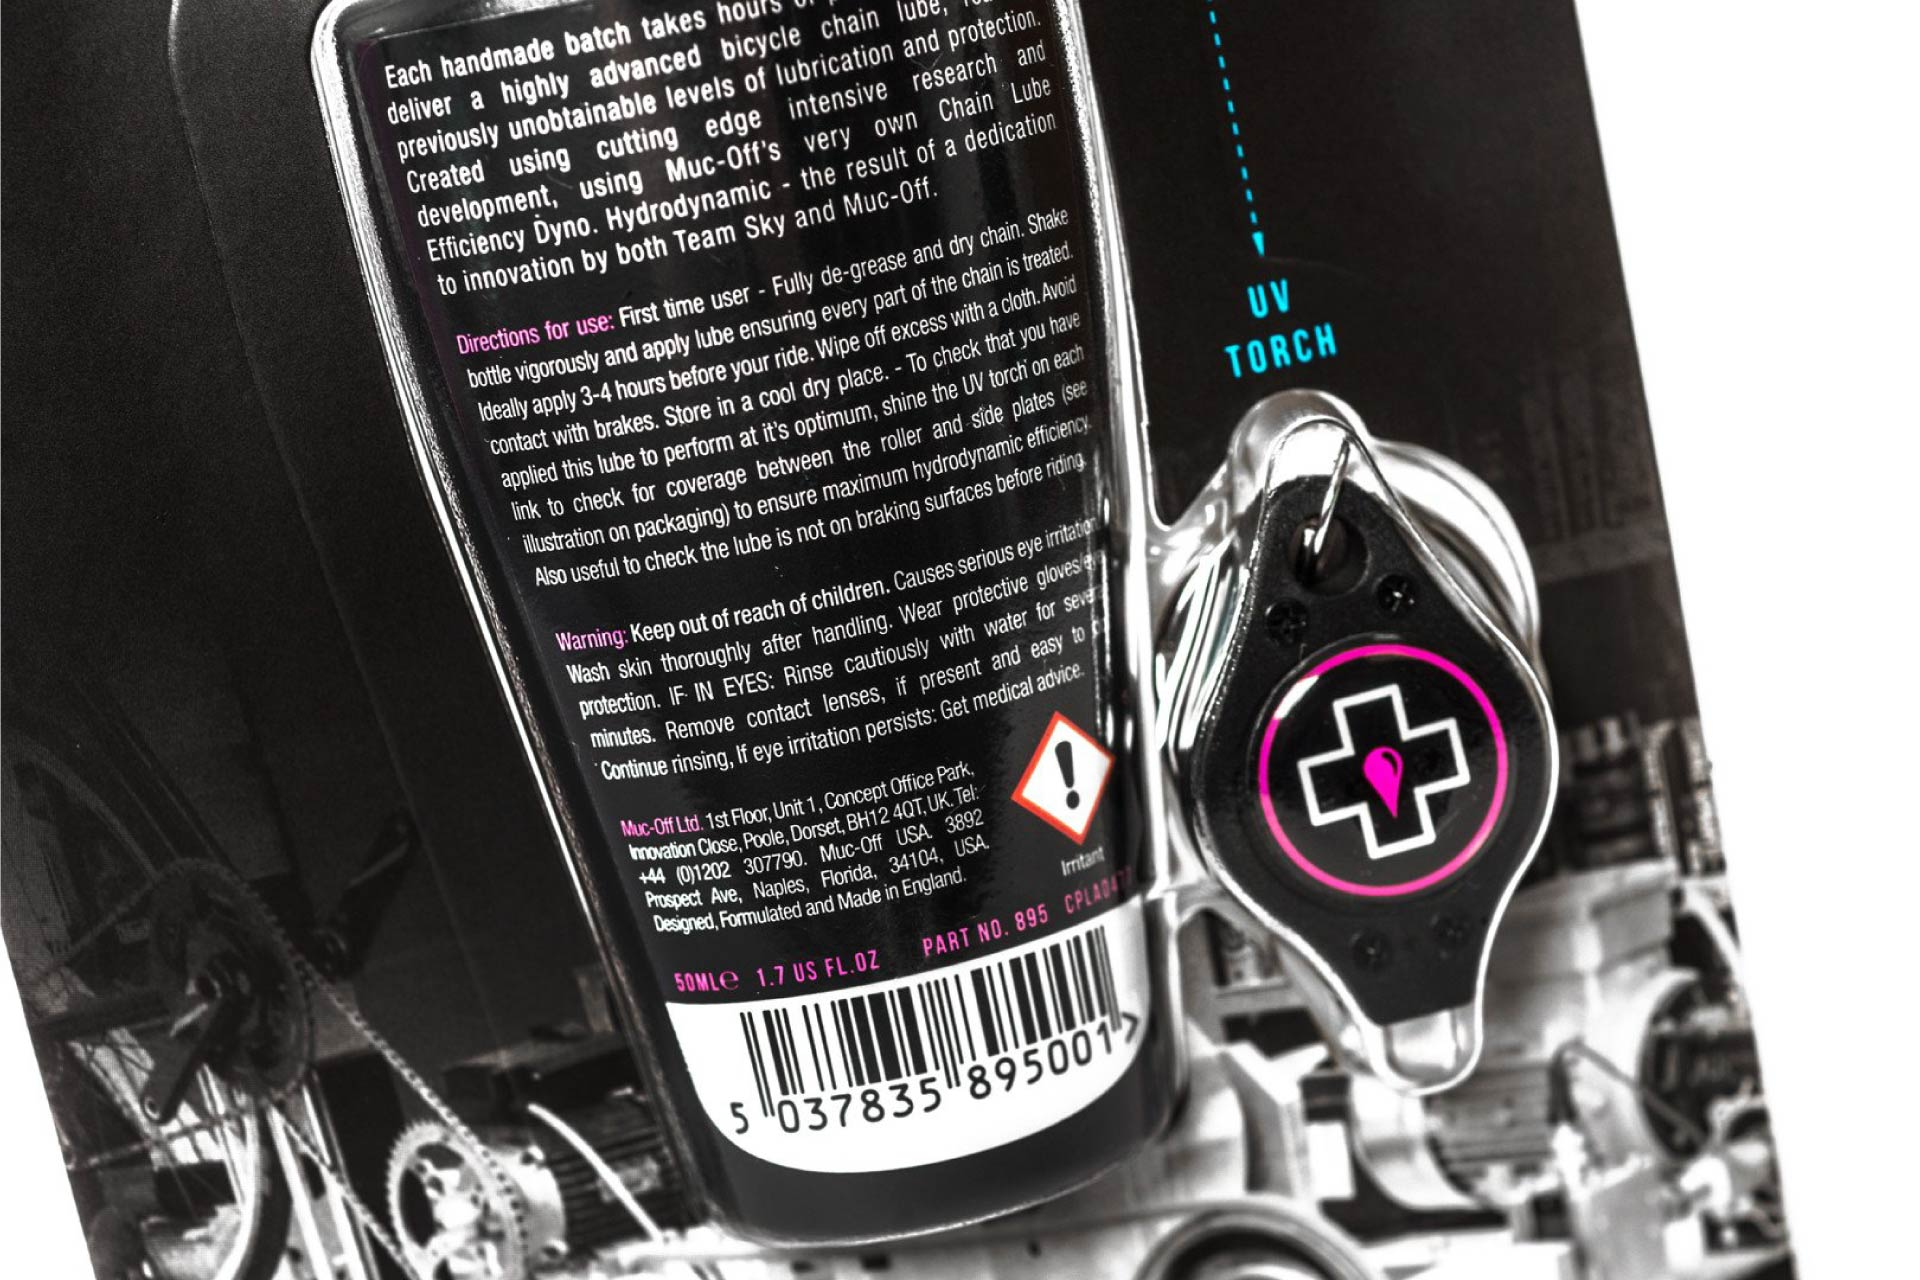 Muc-Off-895-Hydrodynamic-Team-Sky-Lube-50ml--Sky車隊專用鏈條油50毫升-8